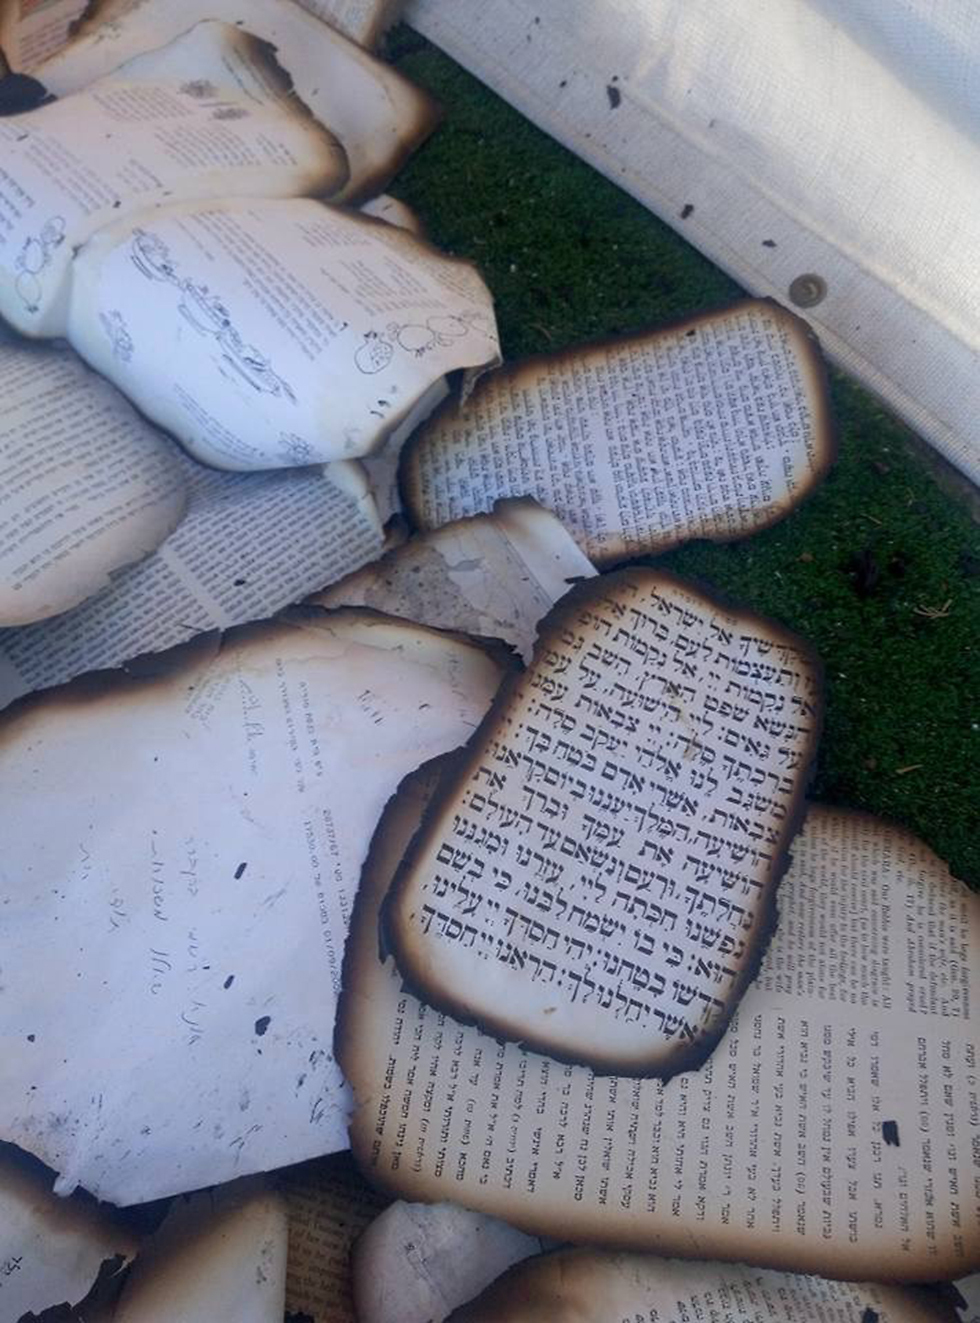 Burnt pages from the Synagogue (Photo: Rabbi Dovi Hiyon)